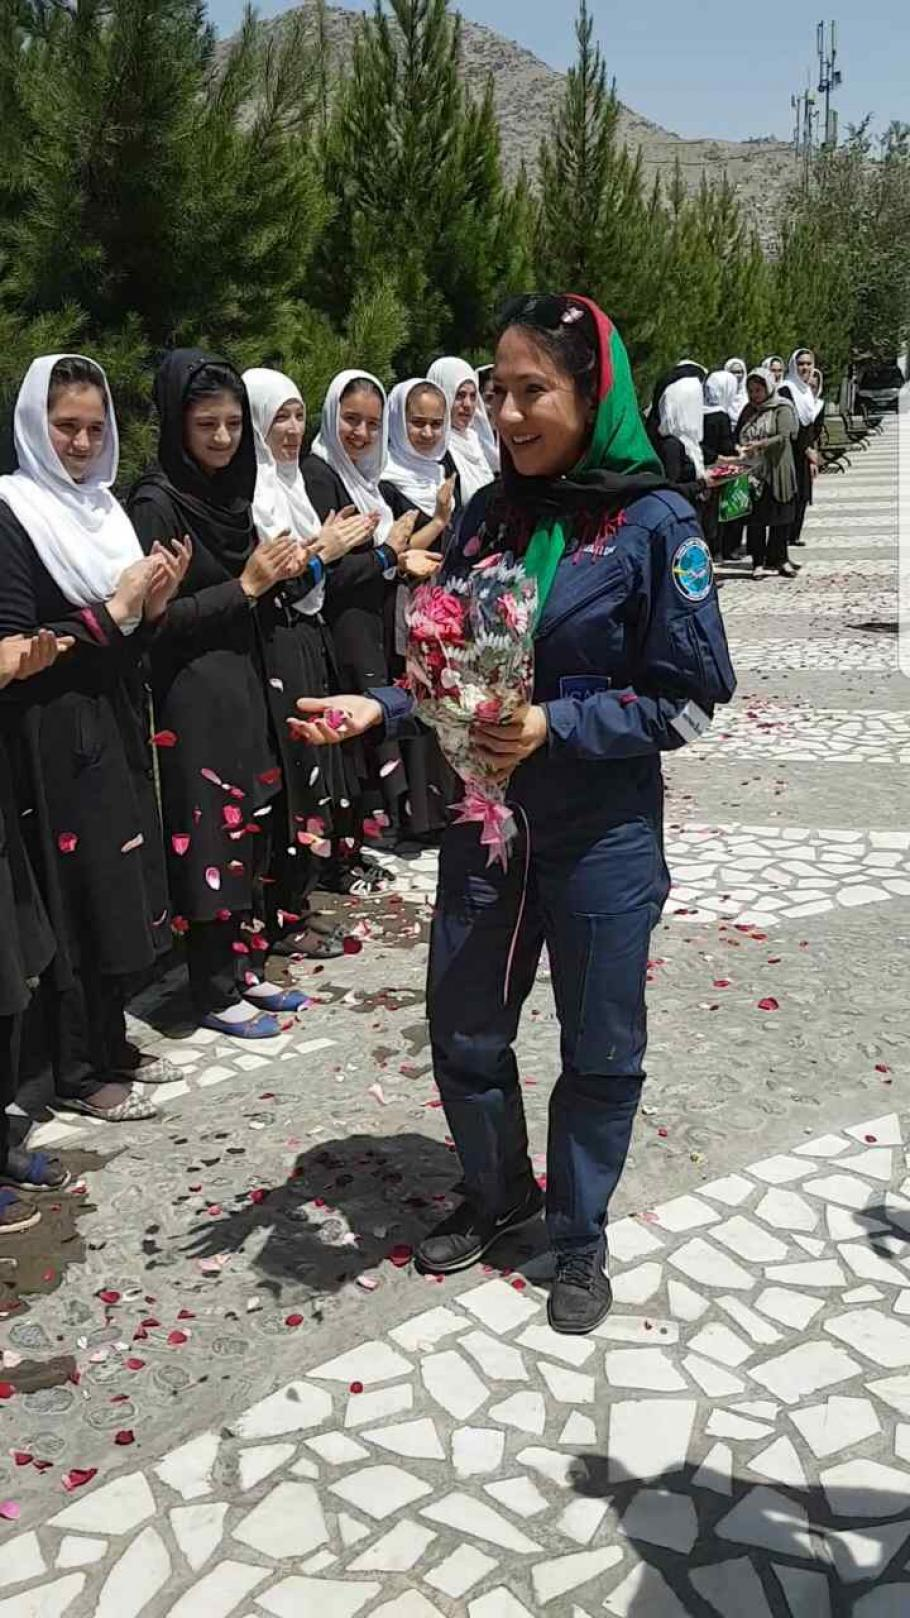 Shaesta returning to Kabul, Afghanistan, after her record-breaking flight.